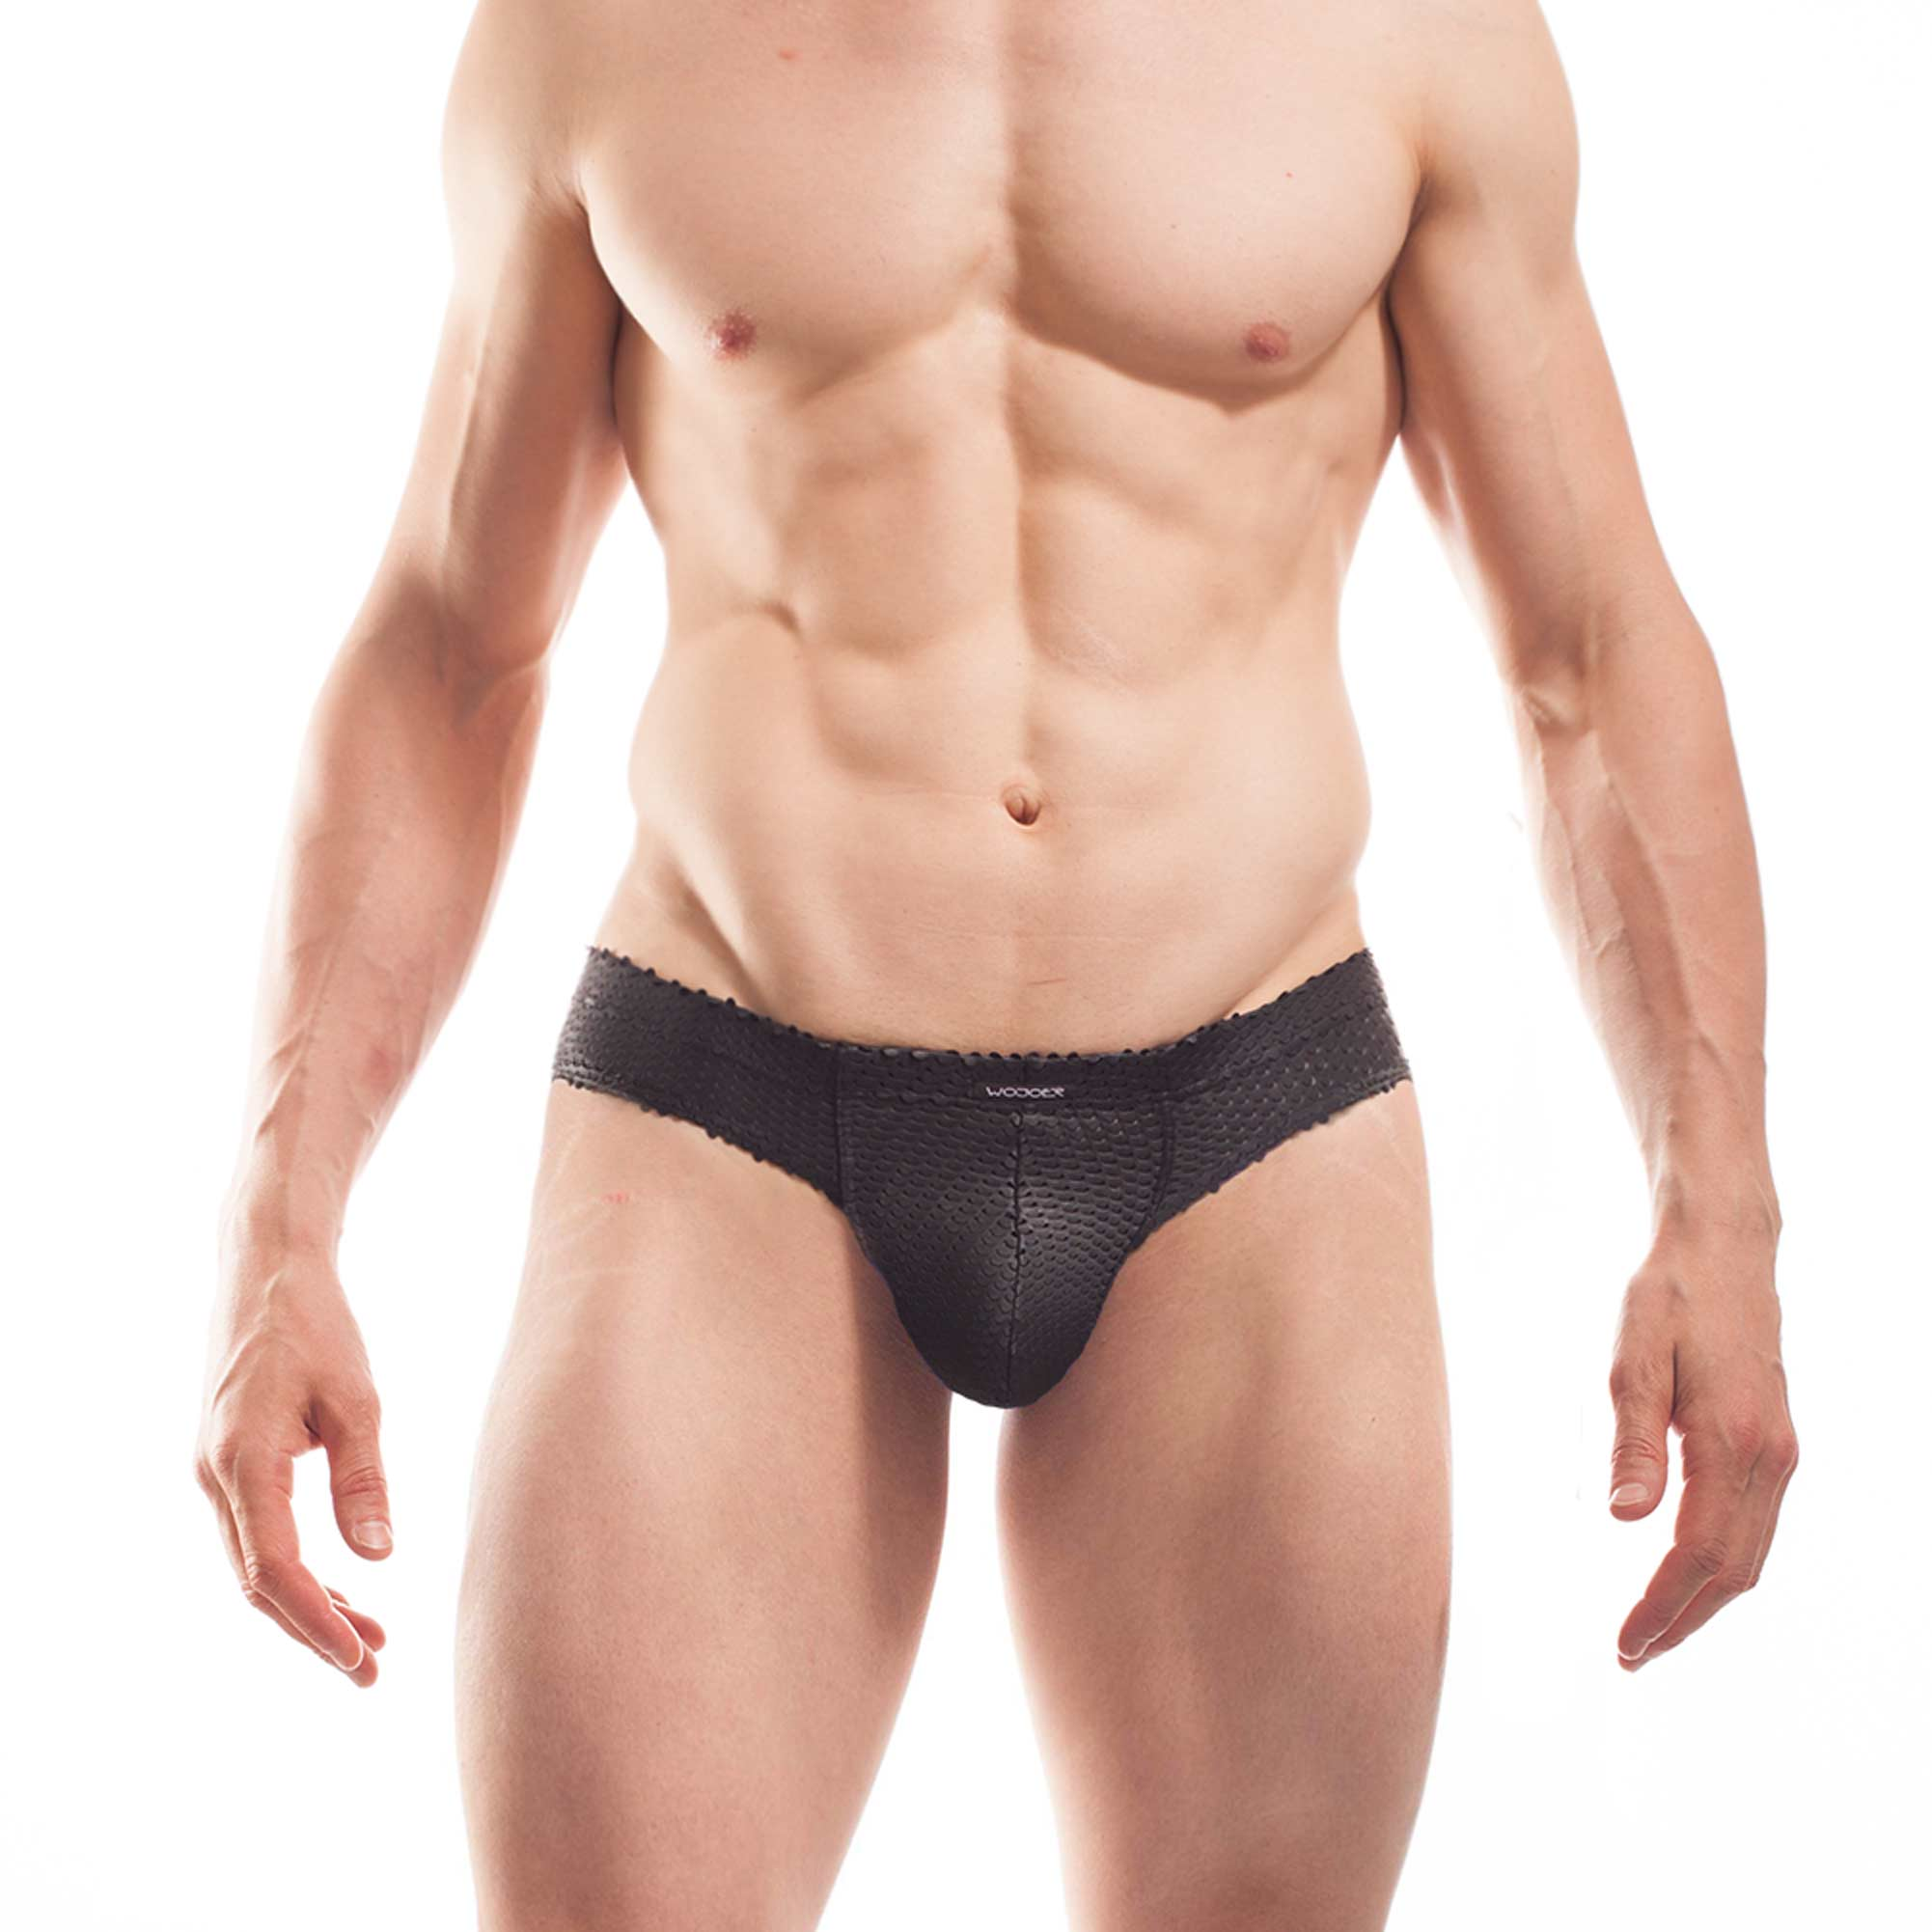 perforated leather brief